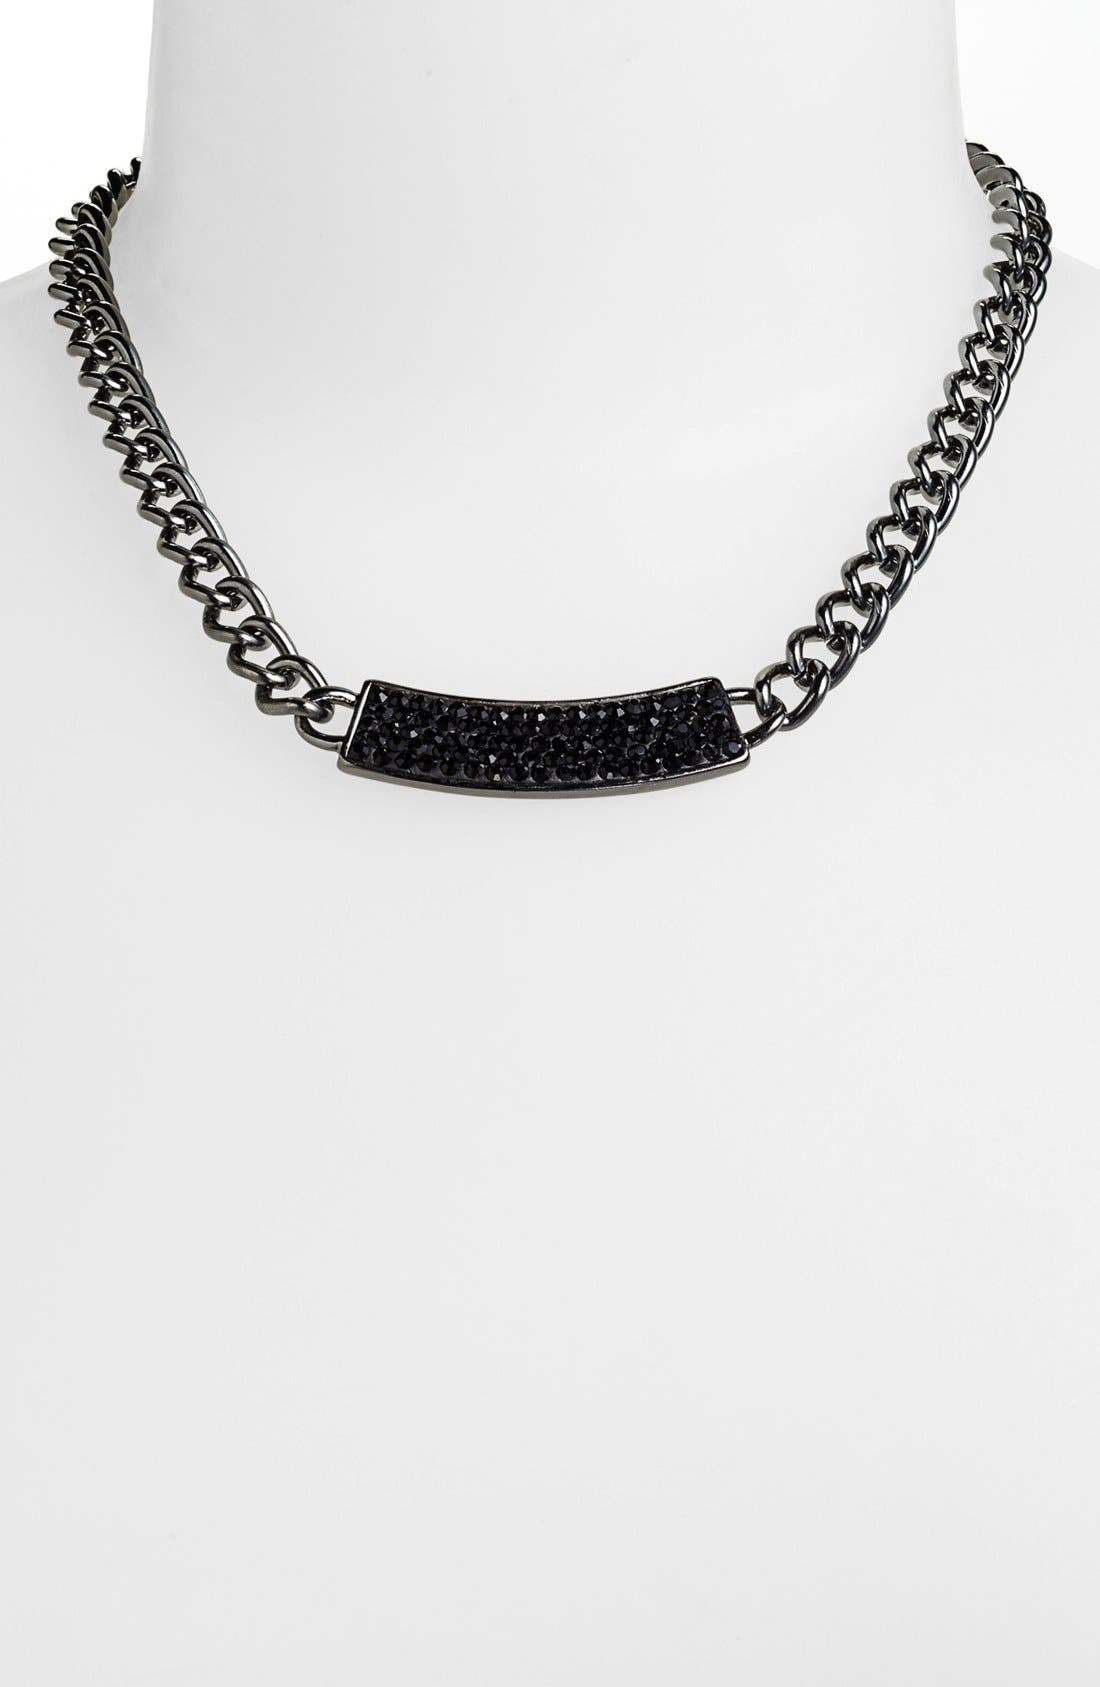 Alternate Image 1 Selected - Nordstrom 'All that Glitters' Pavé ID Plate Chain Necklace